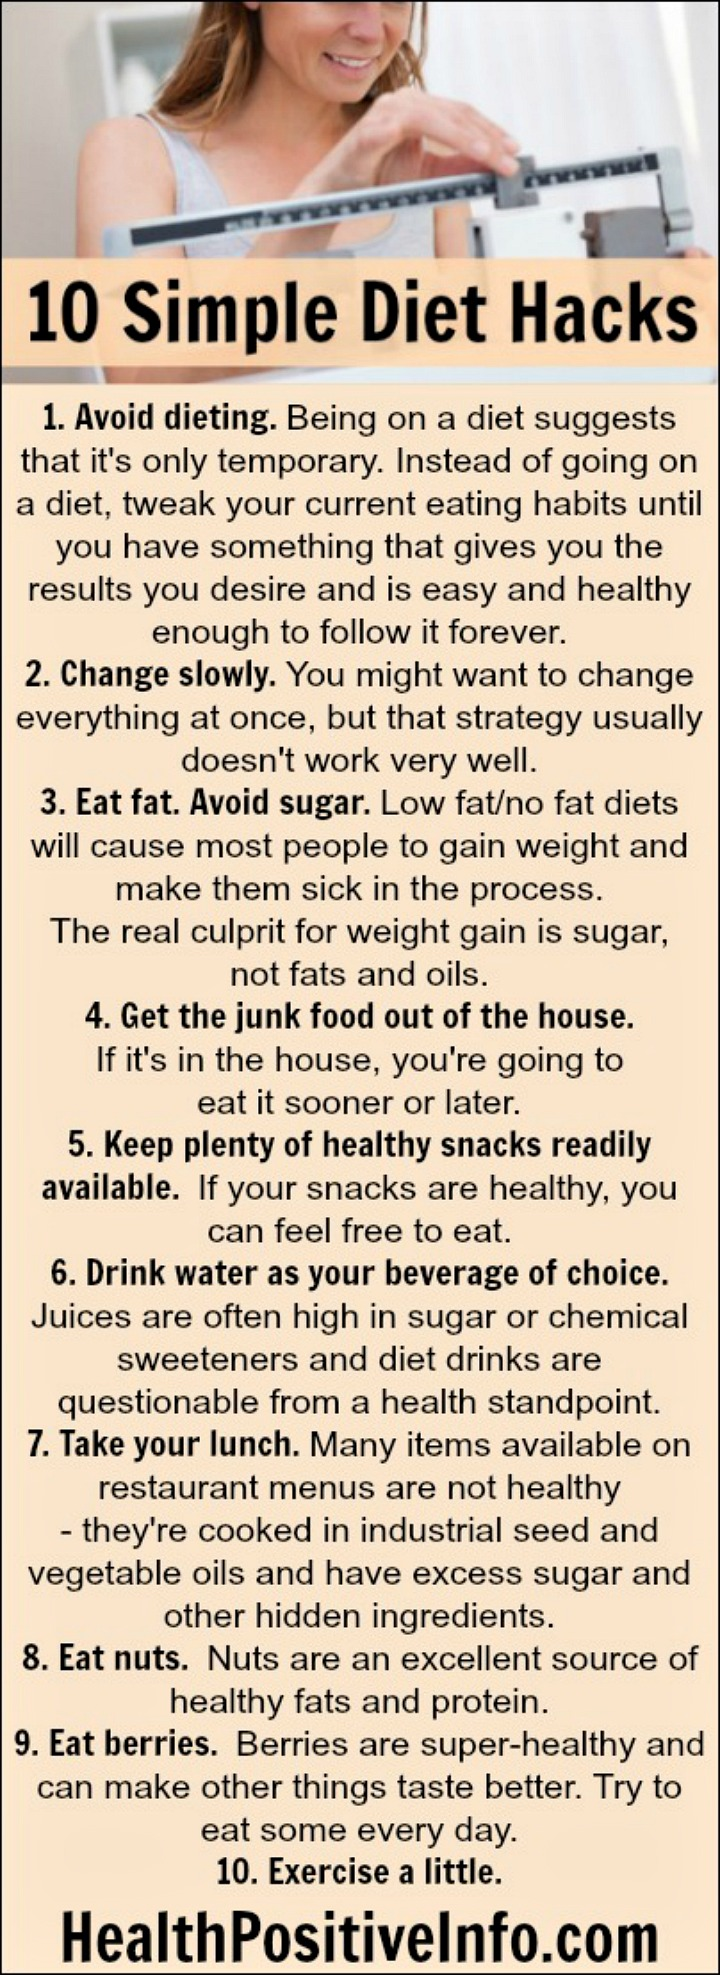 10 Simple Diet Hacks to Lose Weight - https://healthpositiveinfo.com/10-simple-diet-hacks.html